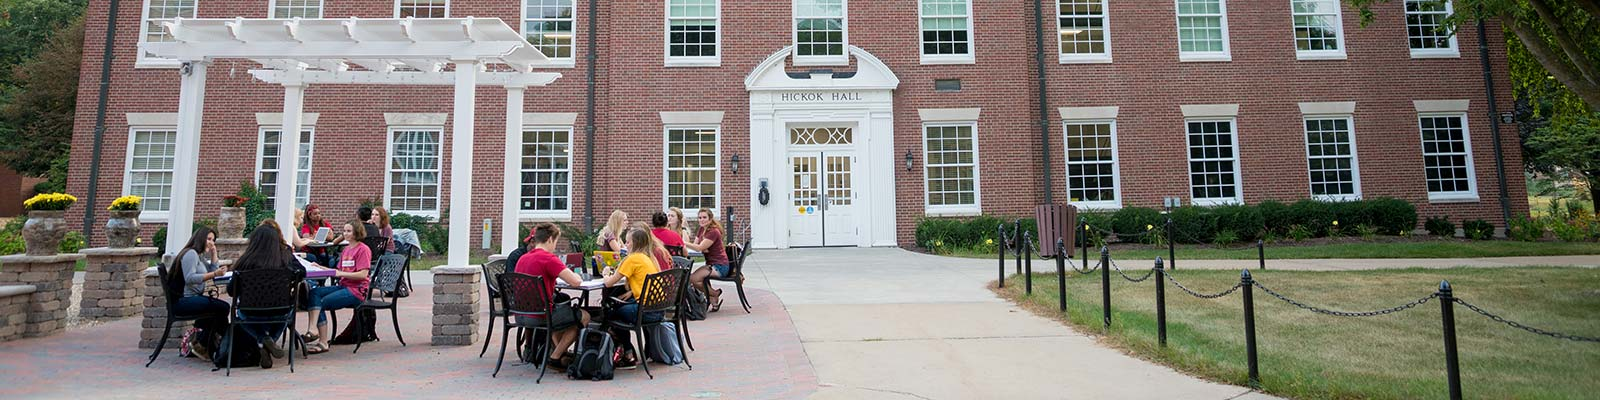 a group of students sitting in the patio area in front of Hickok Hall